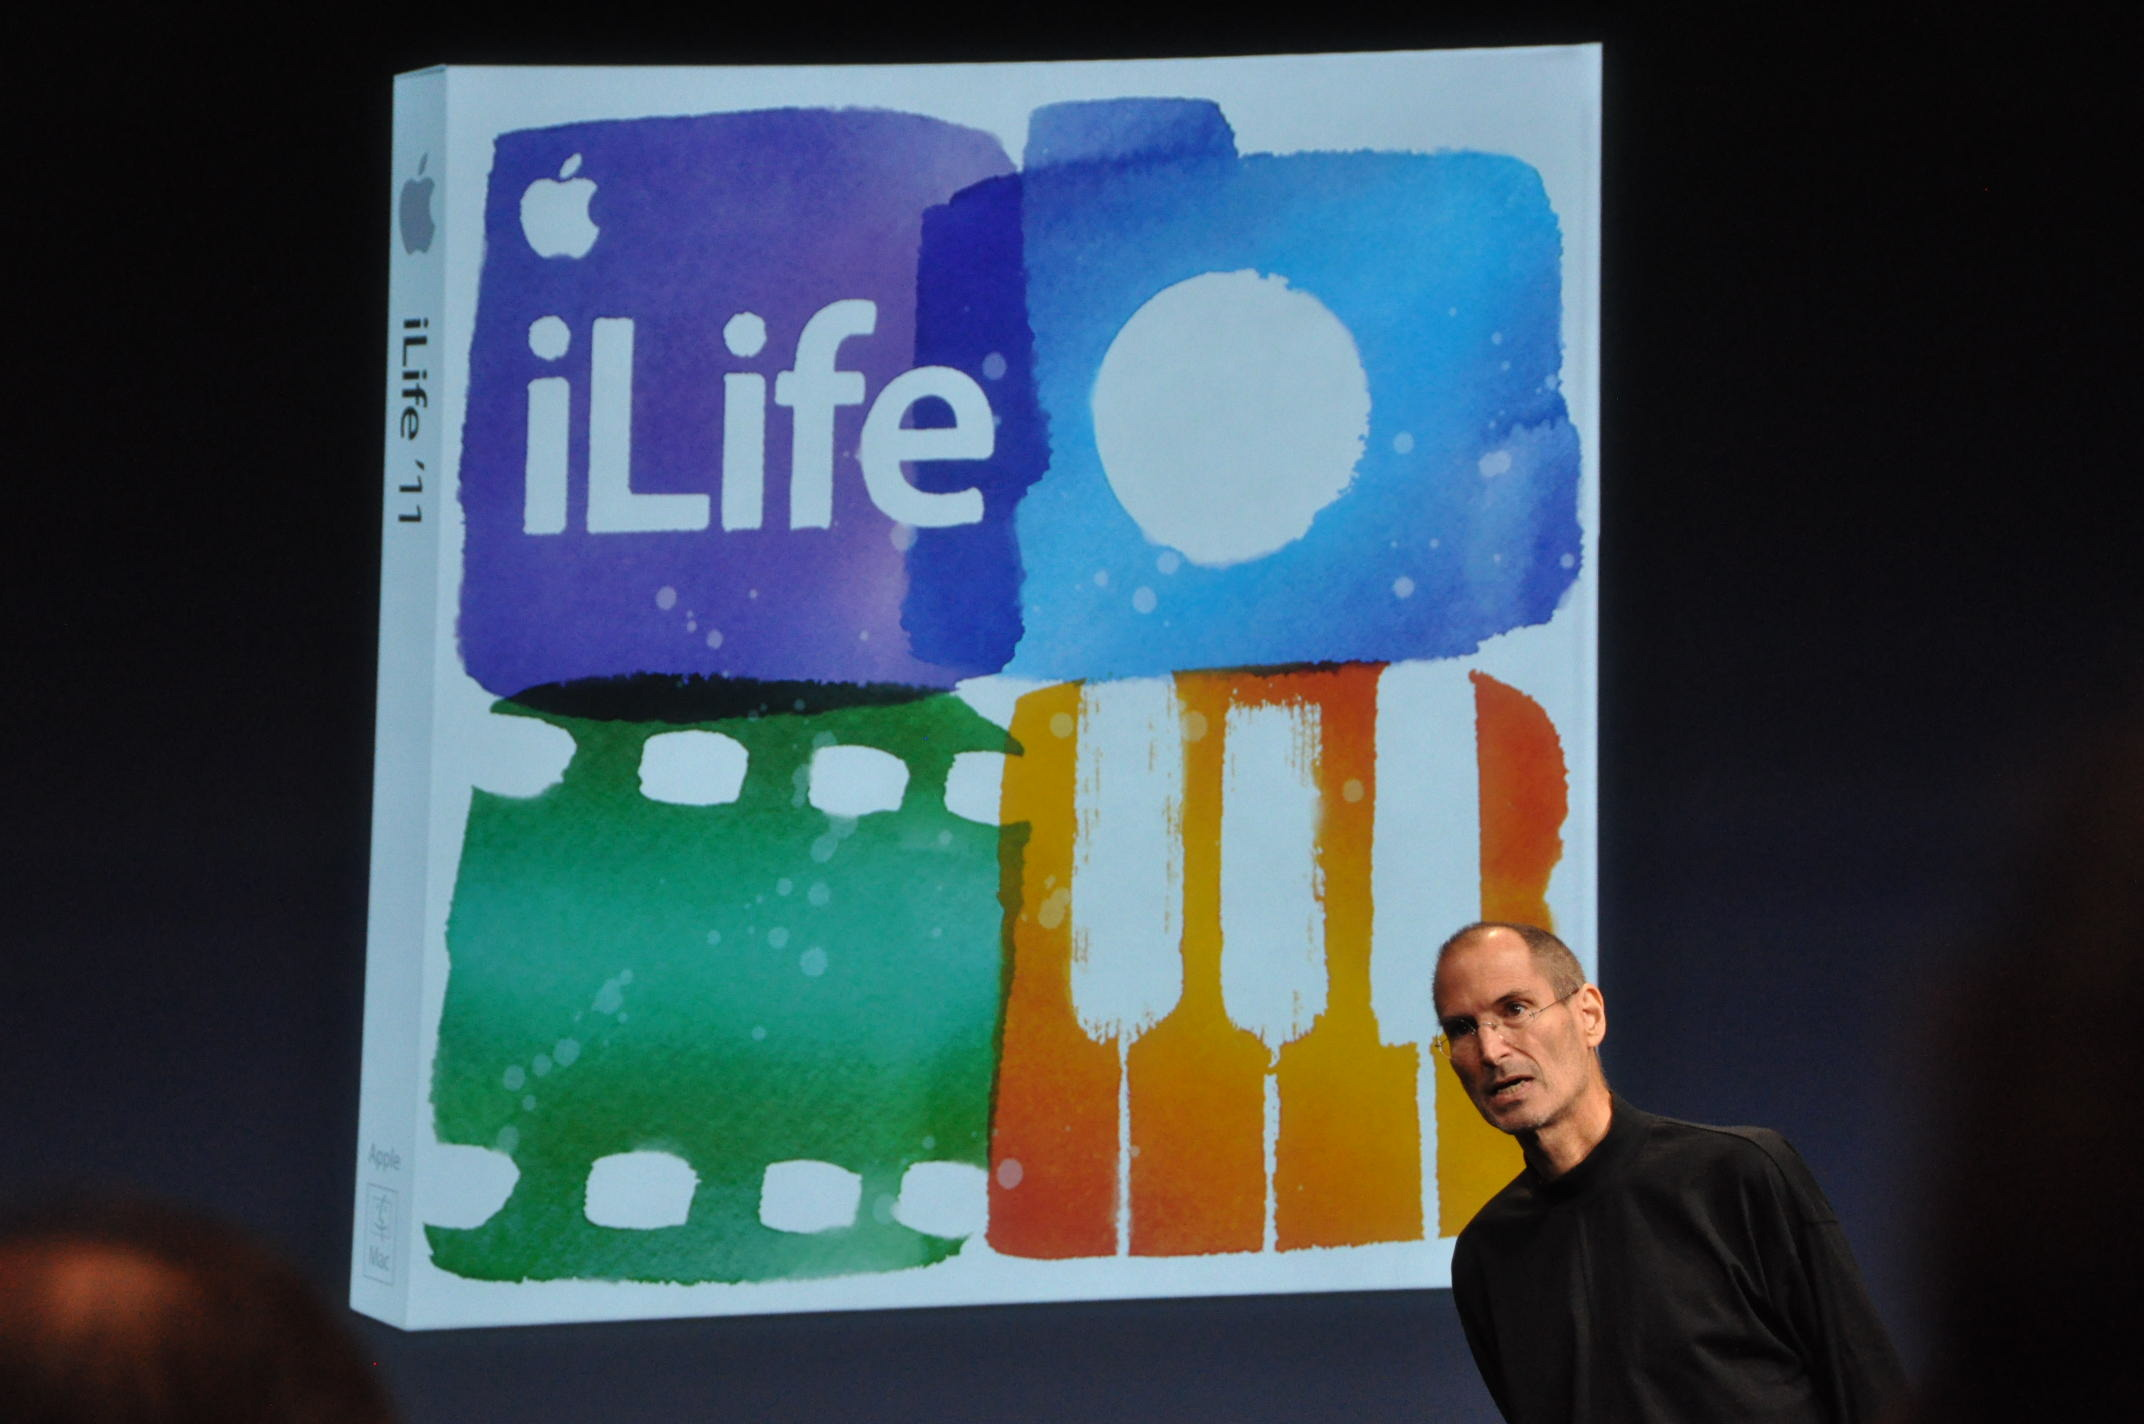 Steve Jobs introduces iLife '11.